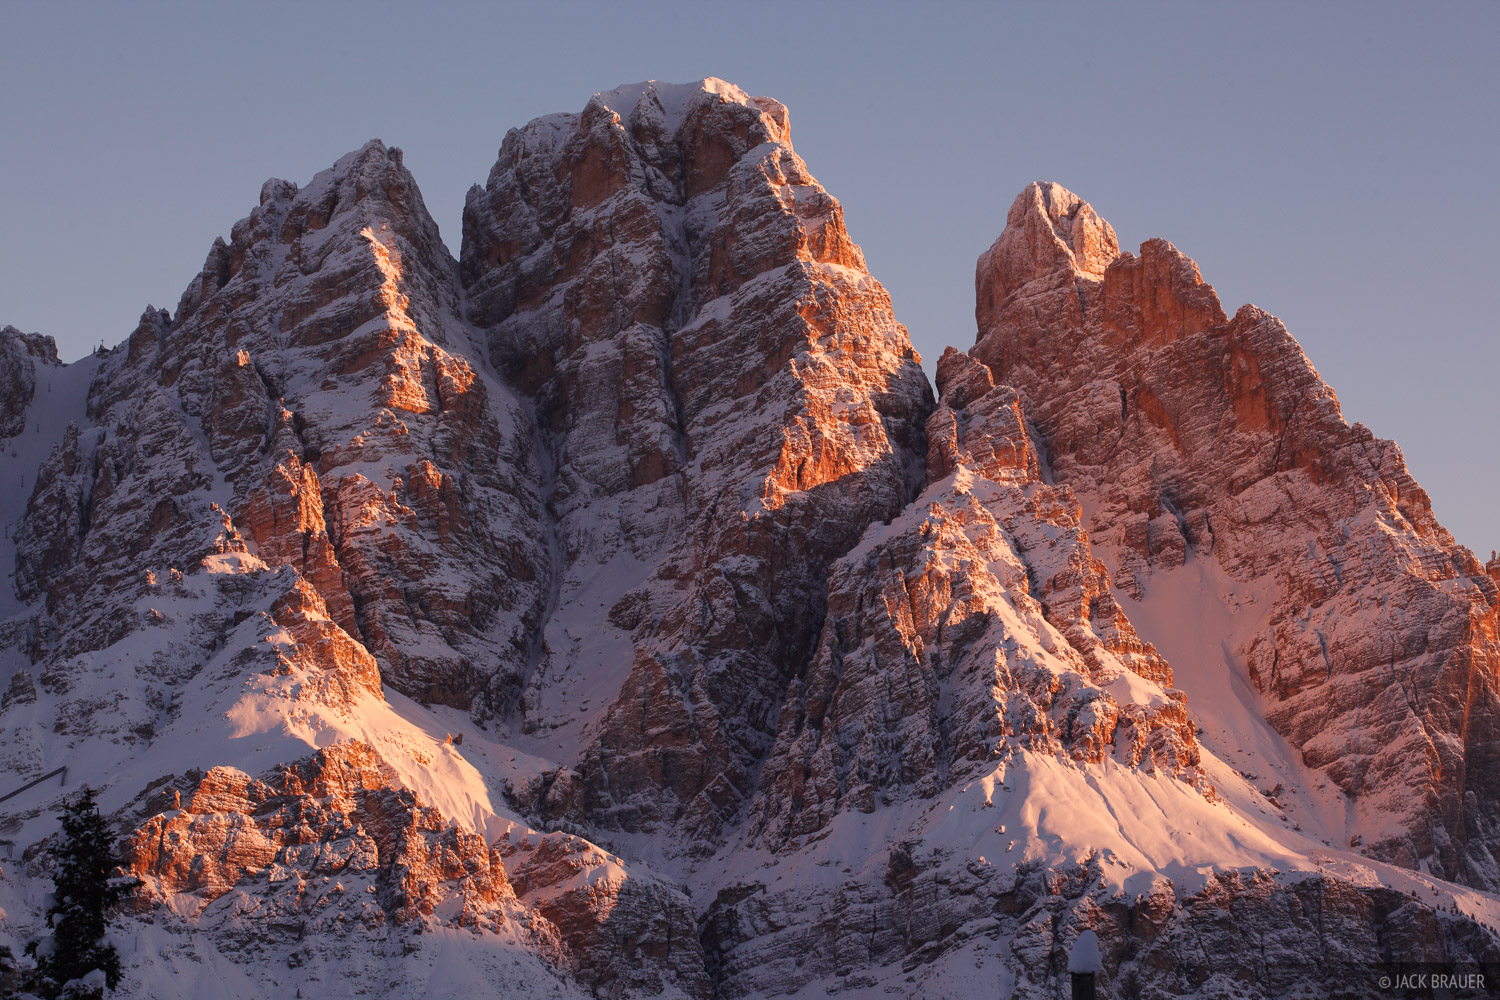 Cristallo, sunrise, Cortina, Dolomites, Italy, photo